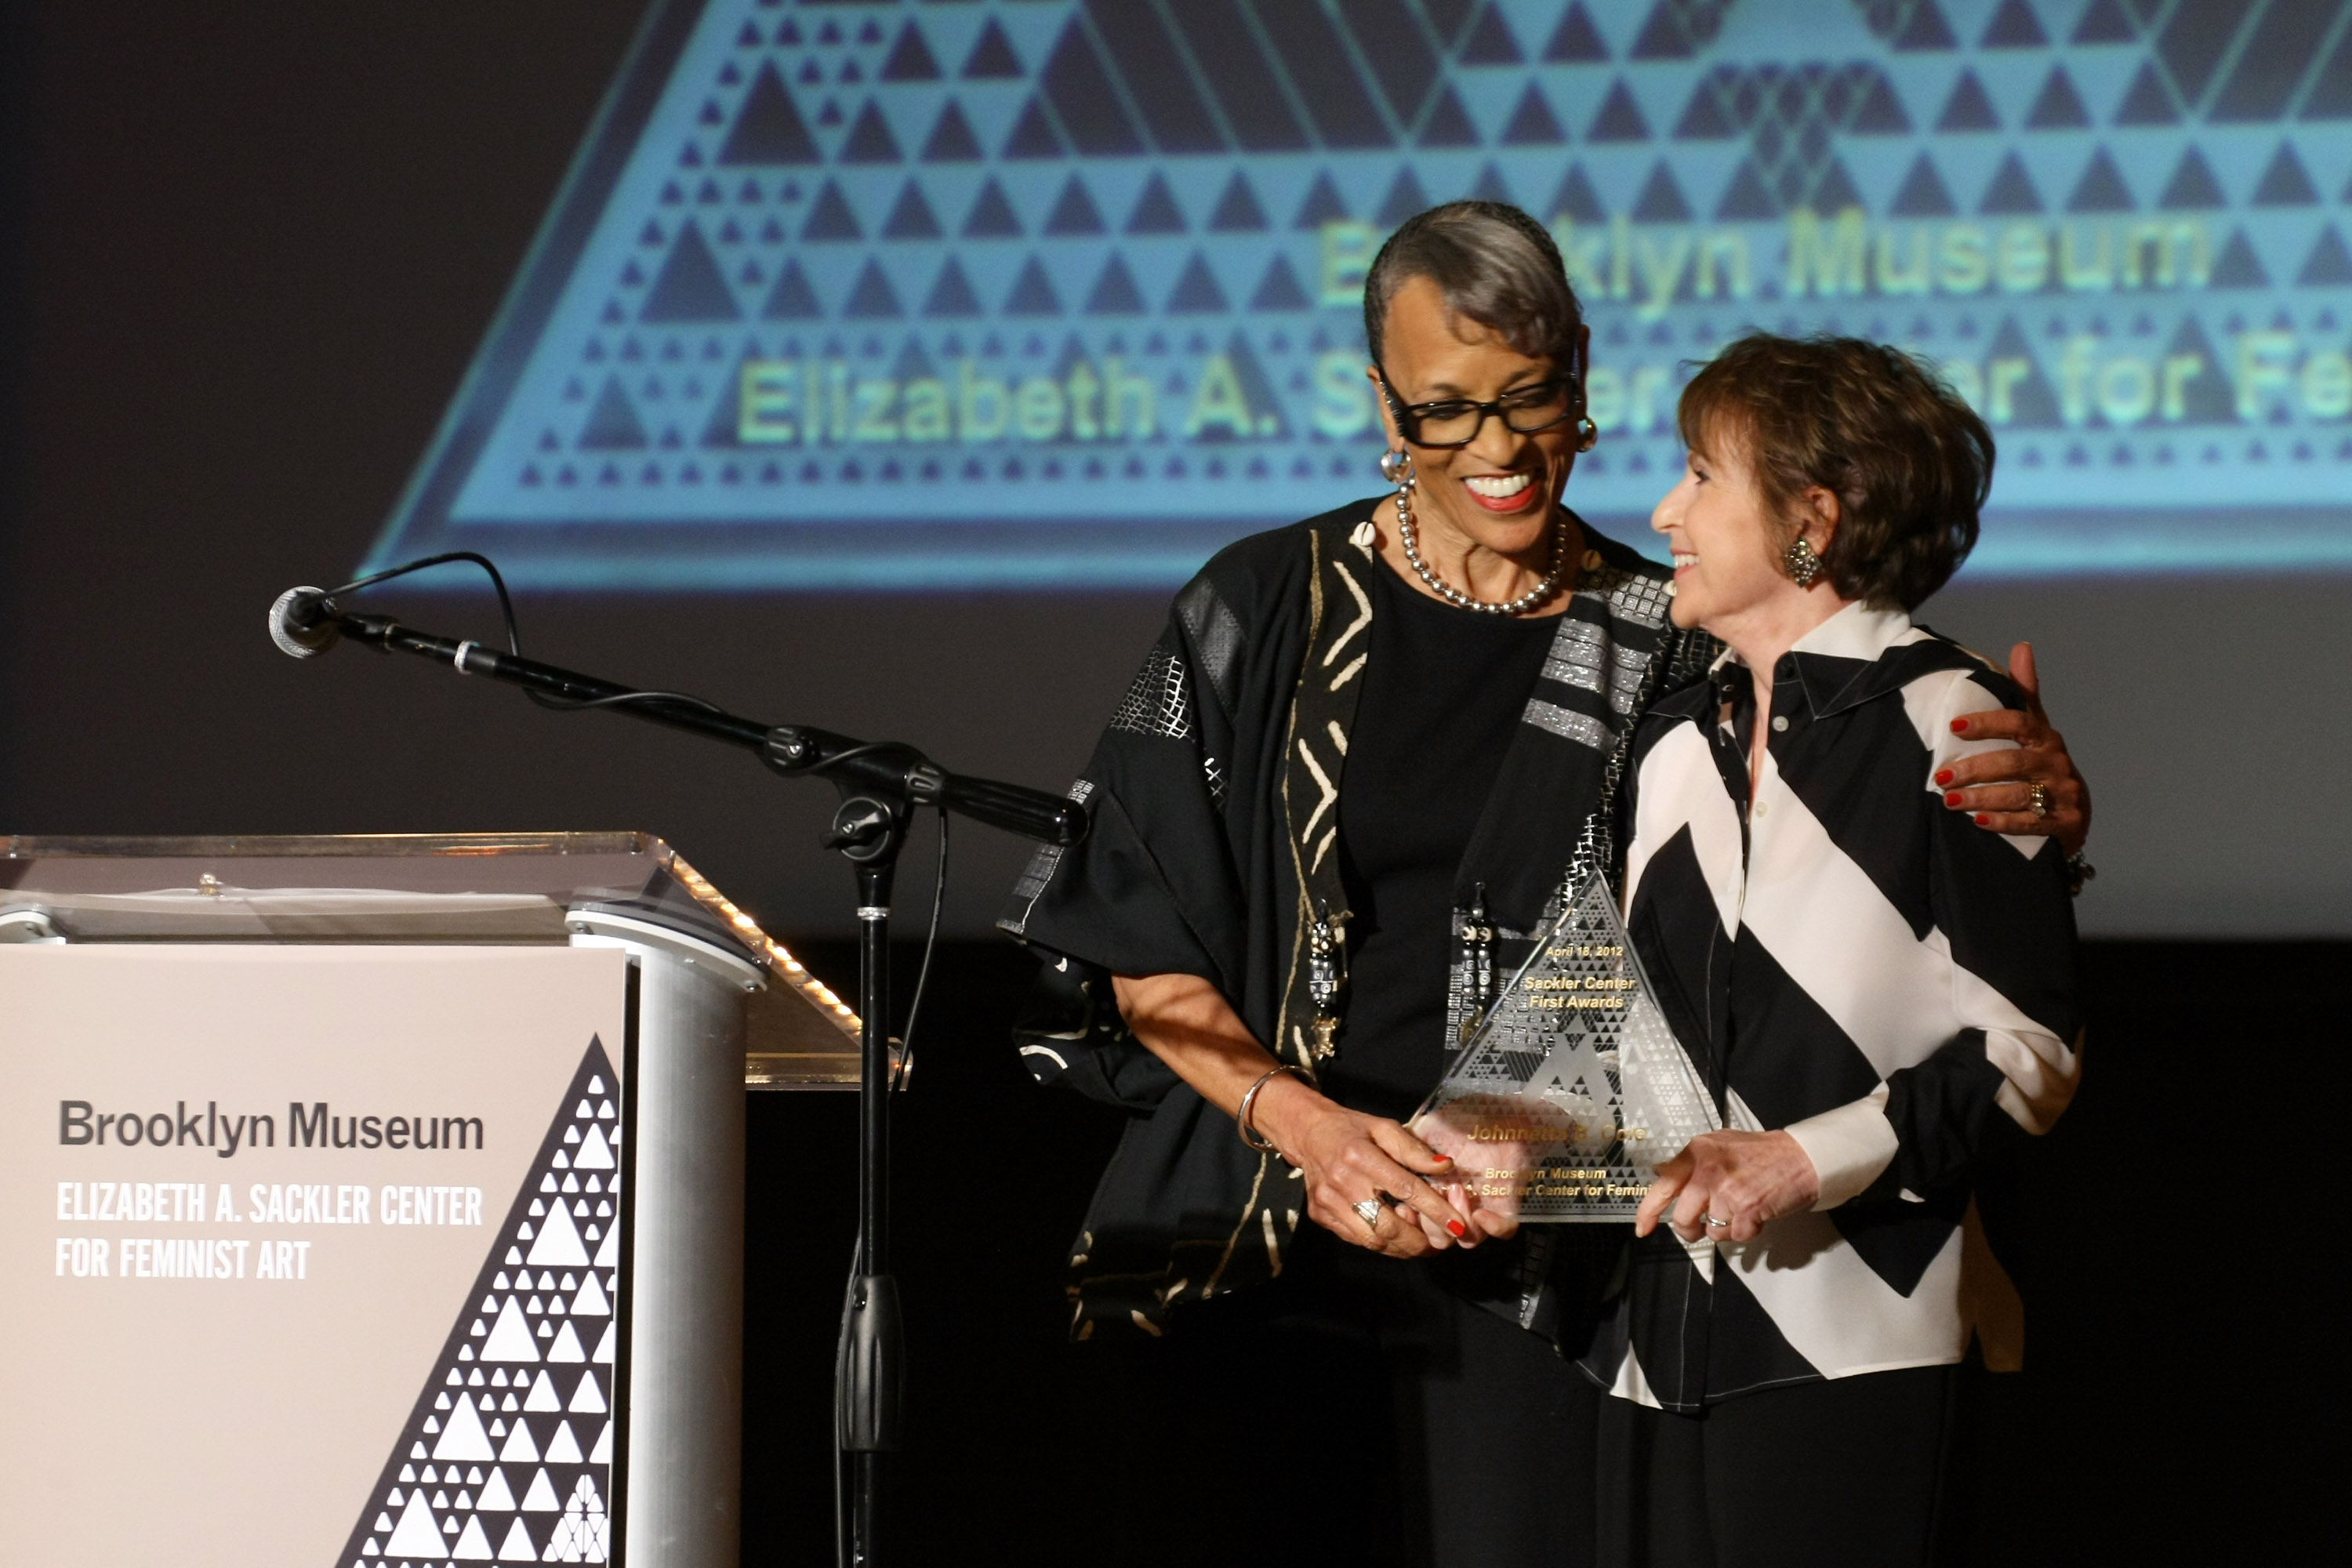 Director of Smithsonian's National Museum of African Art and honoree Dr. Johnnetta B. Cole (L) is presented an award on stage by Elizabeth A. Sackler during the Brooklyn Museum's Sackler Center First Awards at the Brooklyn Museum on April 18, 2012 in the Brooklyn borough of New York City. (Photo by Neilson Barnard/Getty Images)